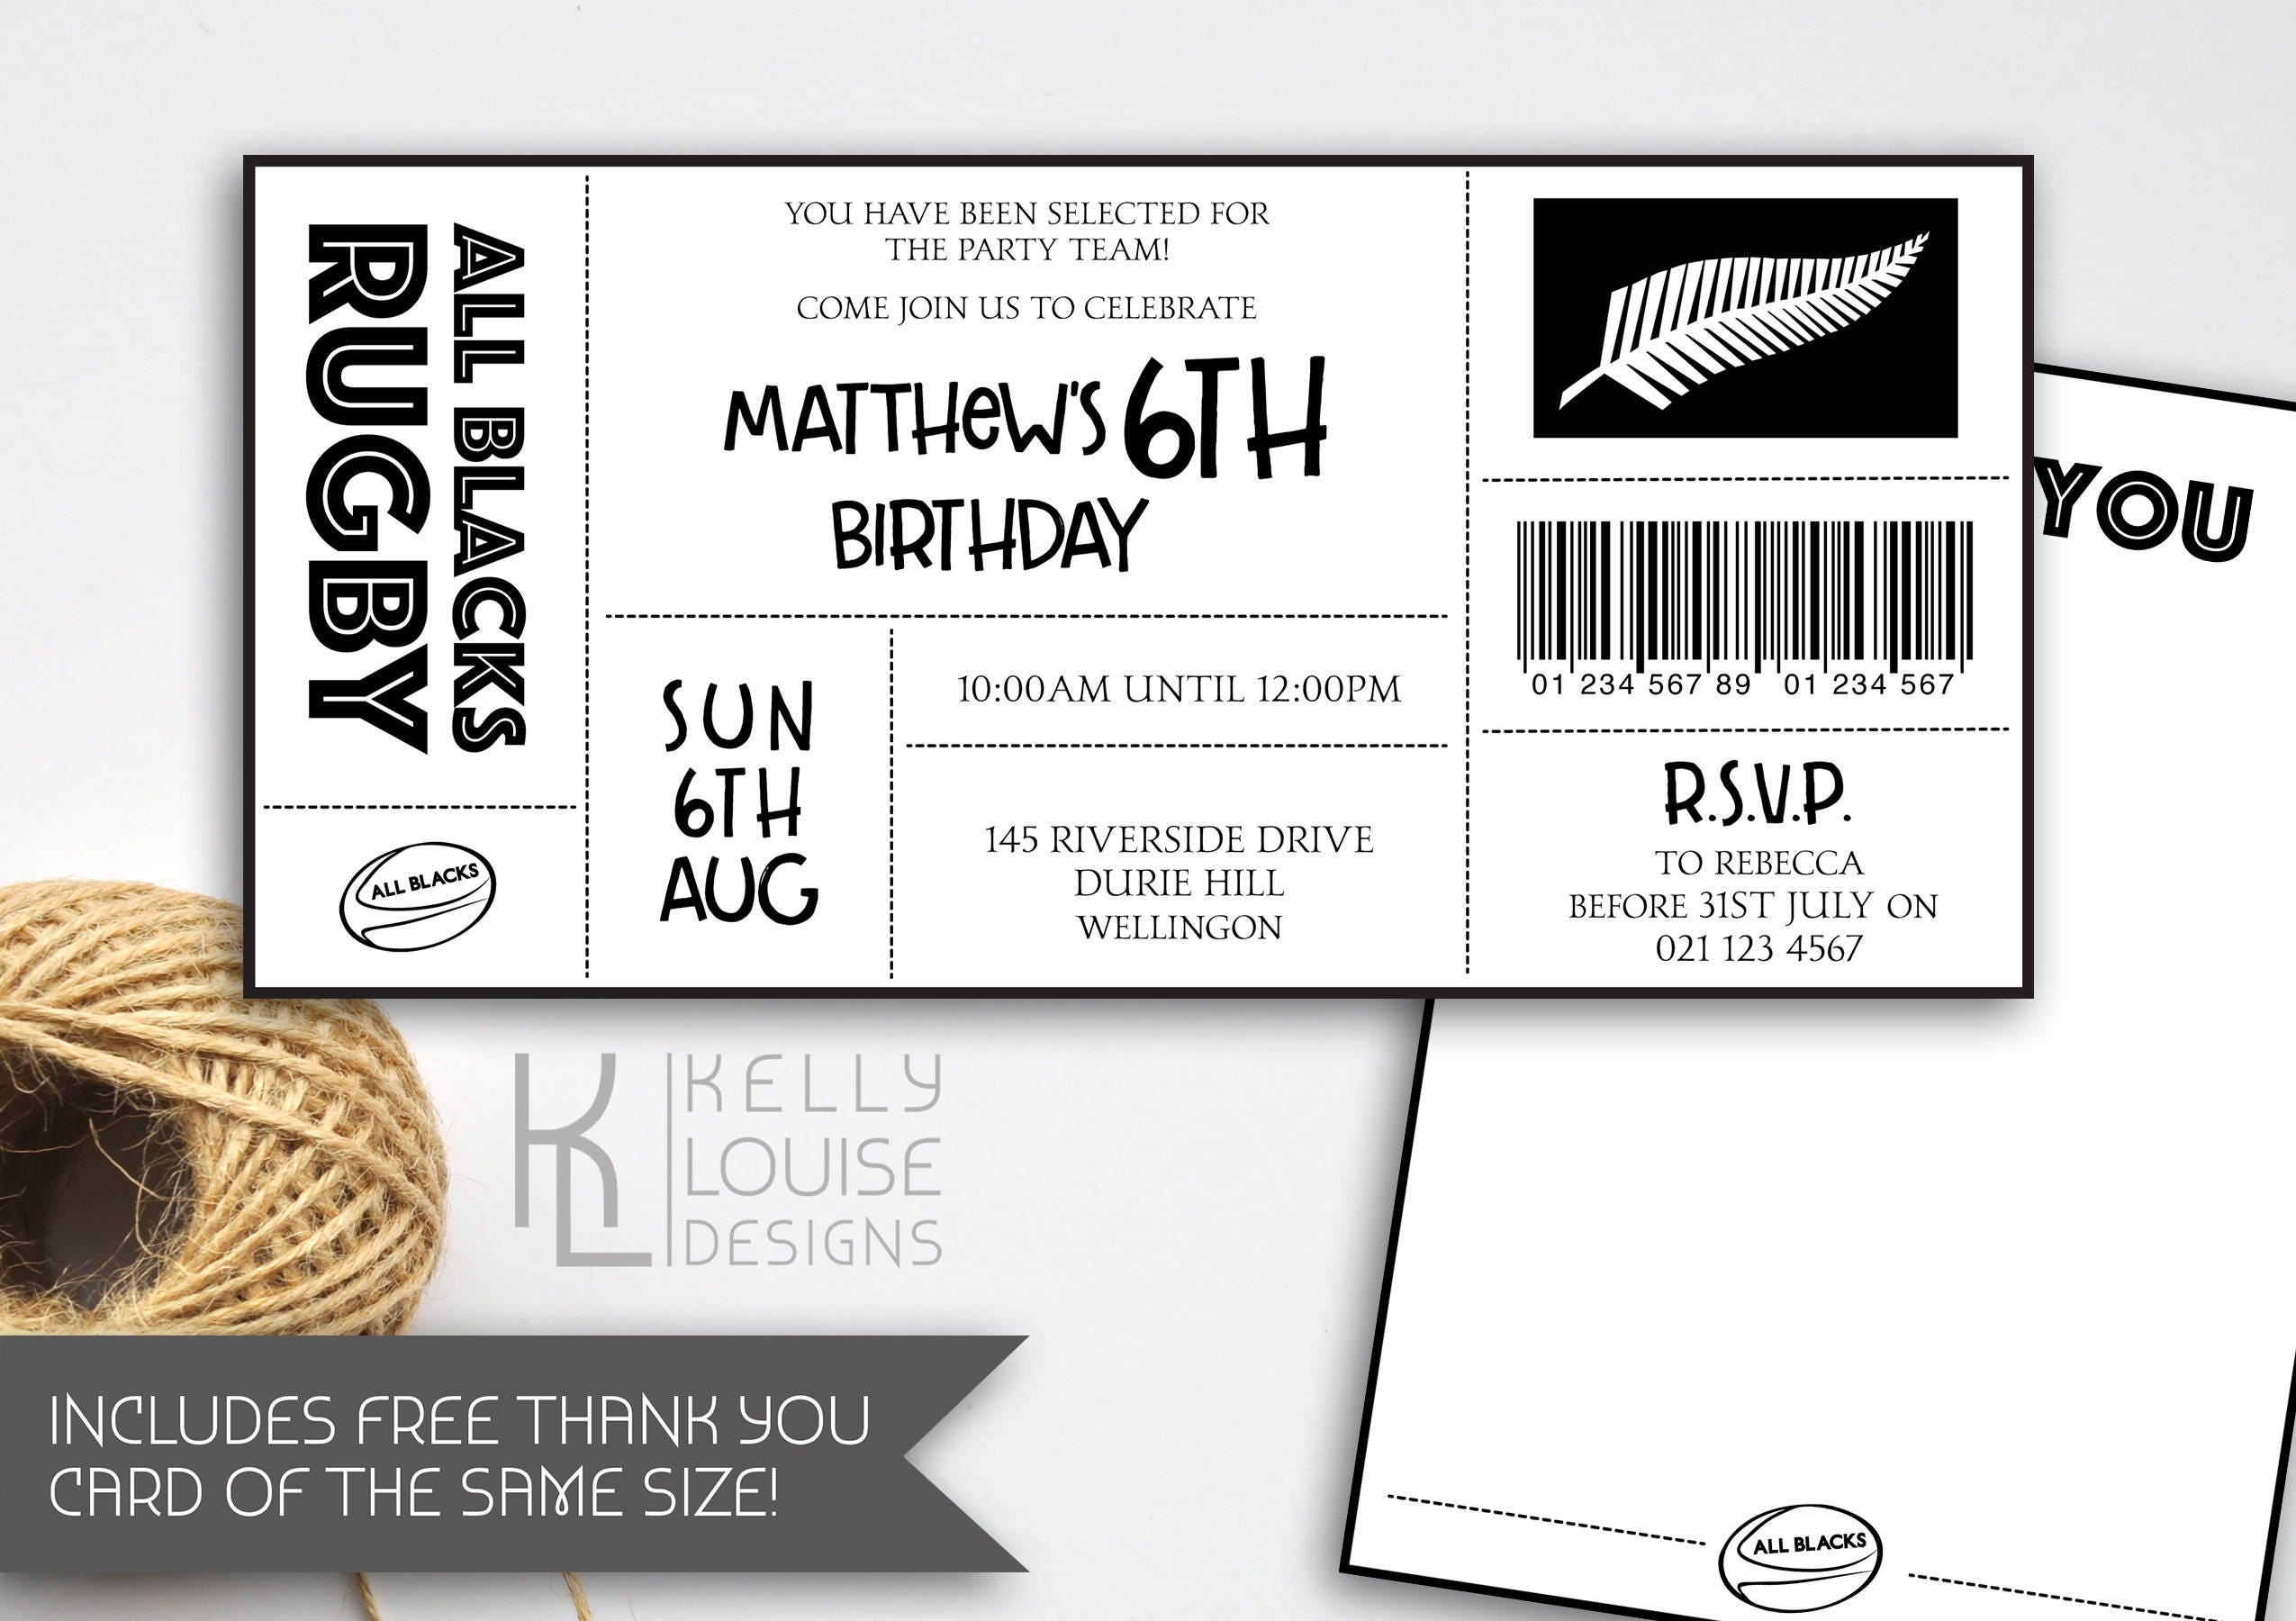 All blacks birthday invitation rugby birthday party all blacks all blacks birthday invitation rugby birthday party all blacks rugby party all blacks rugby ticket invitation nz rugby 187 stopboris Choice Image